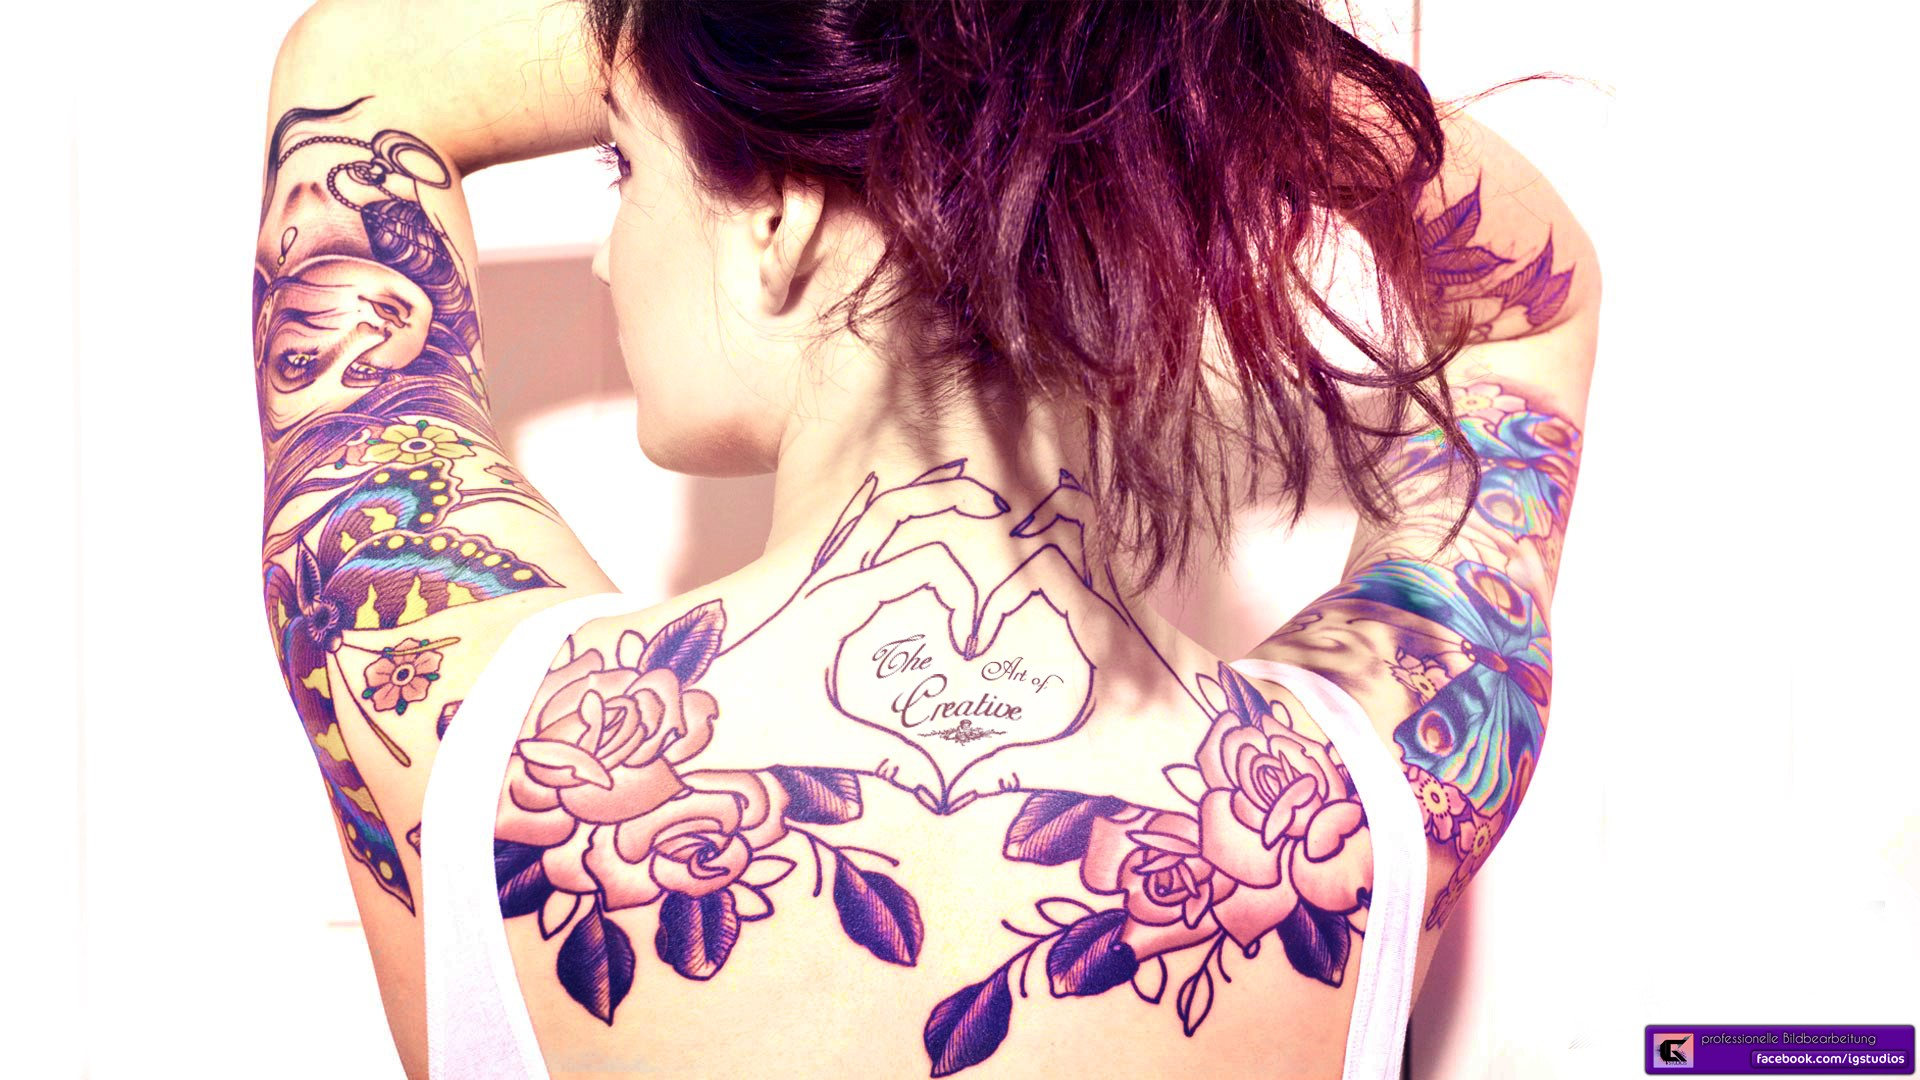 tattoo girl wallpapers high quality download free. Black Bedroom Furniture Sets. Home Design Ideas